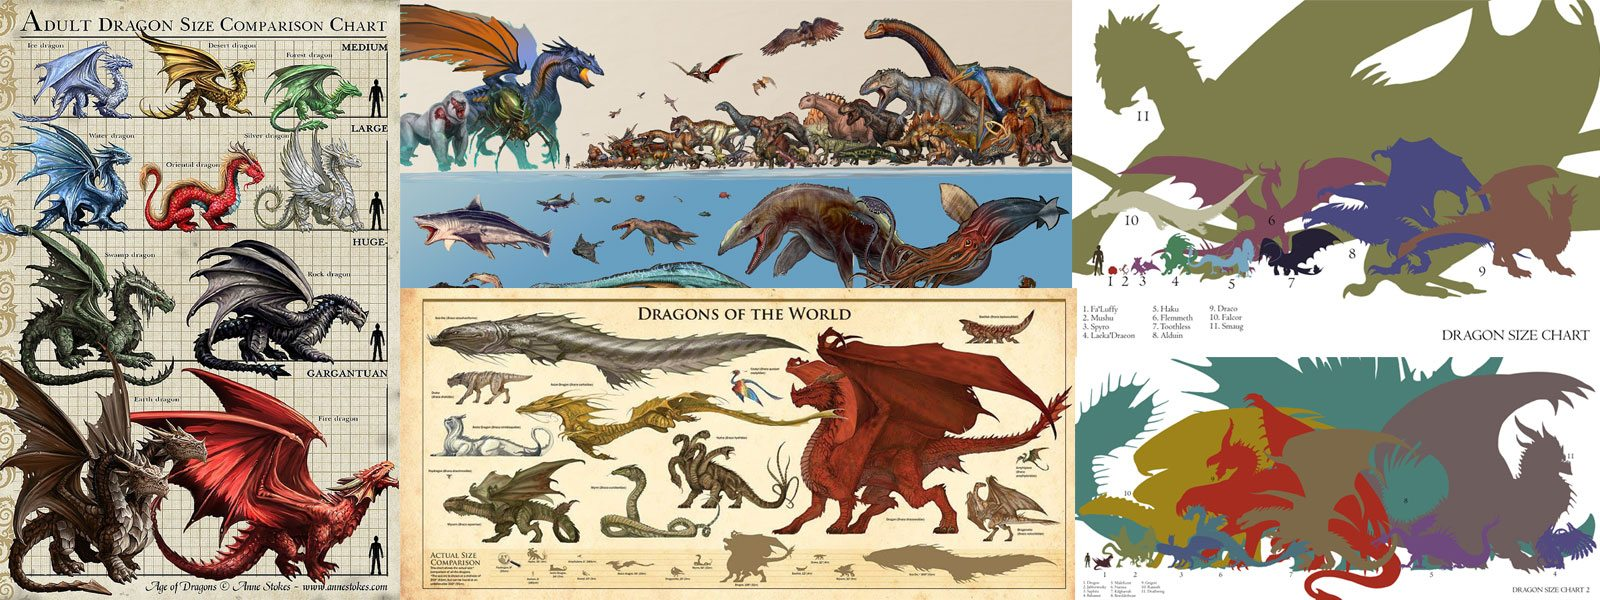 Dragon and Monster Size Comparison Charts